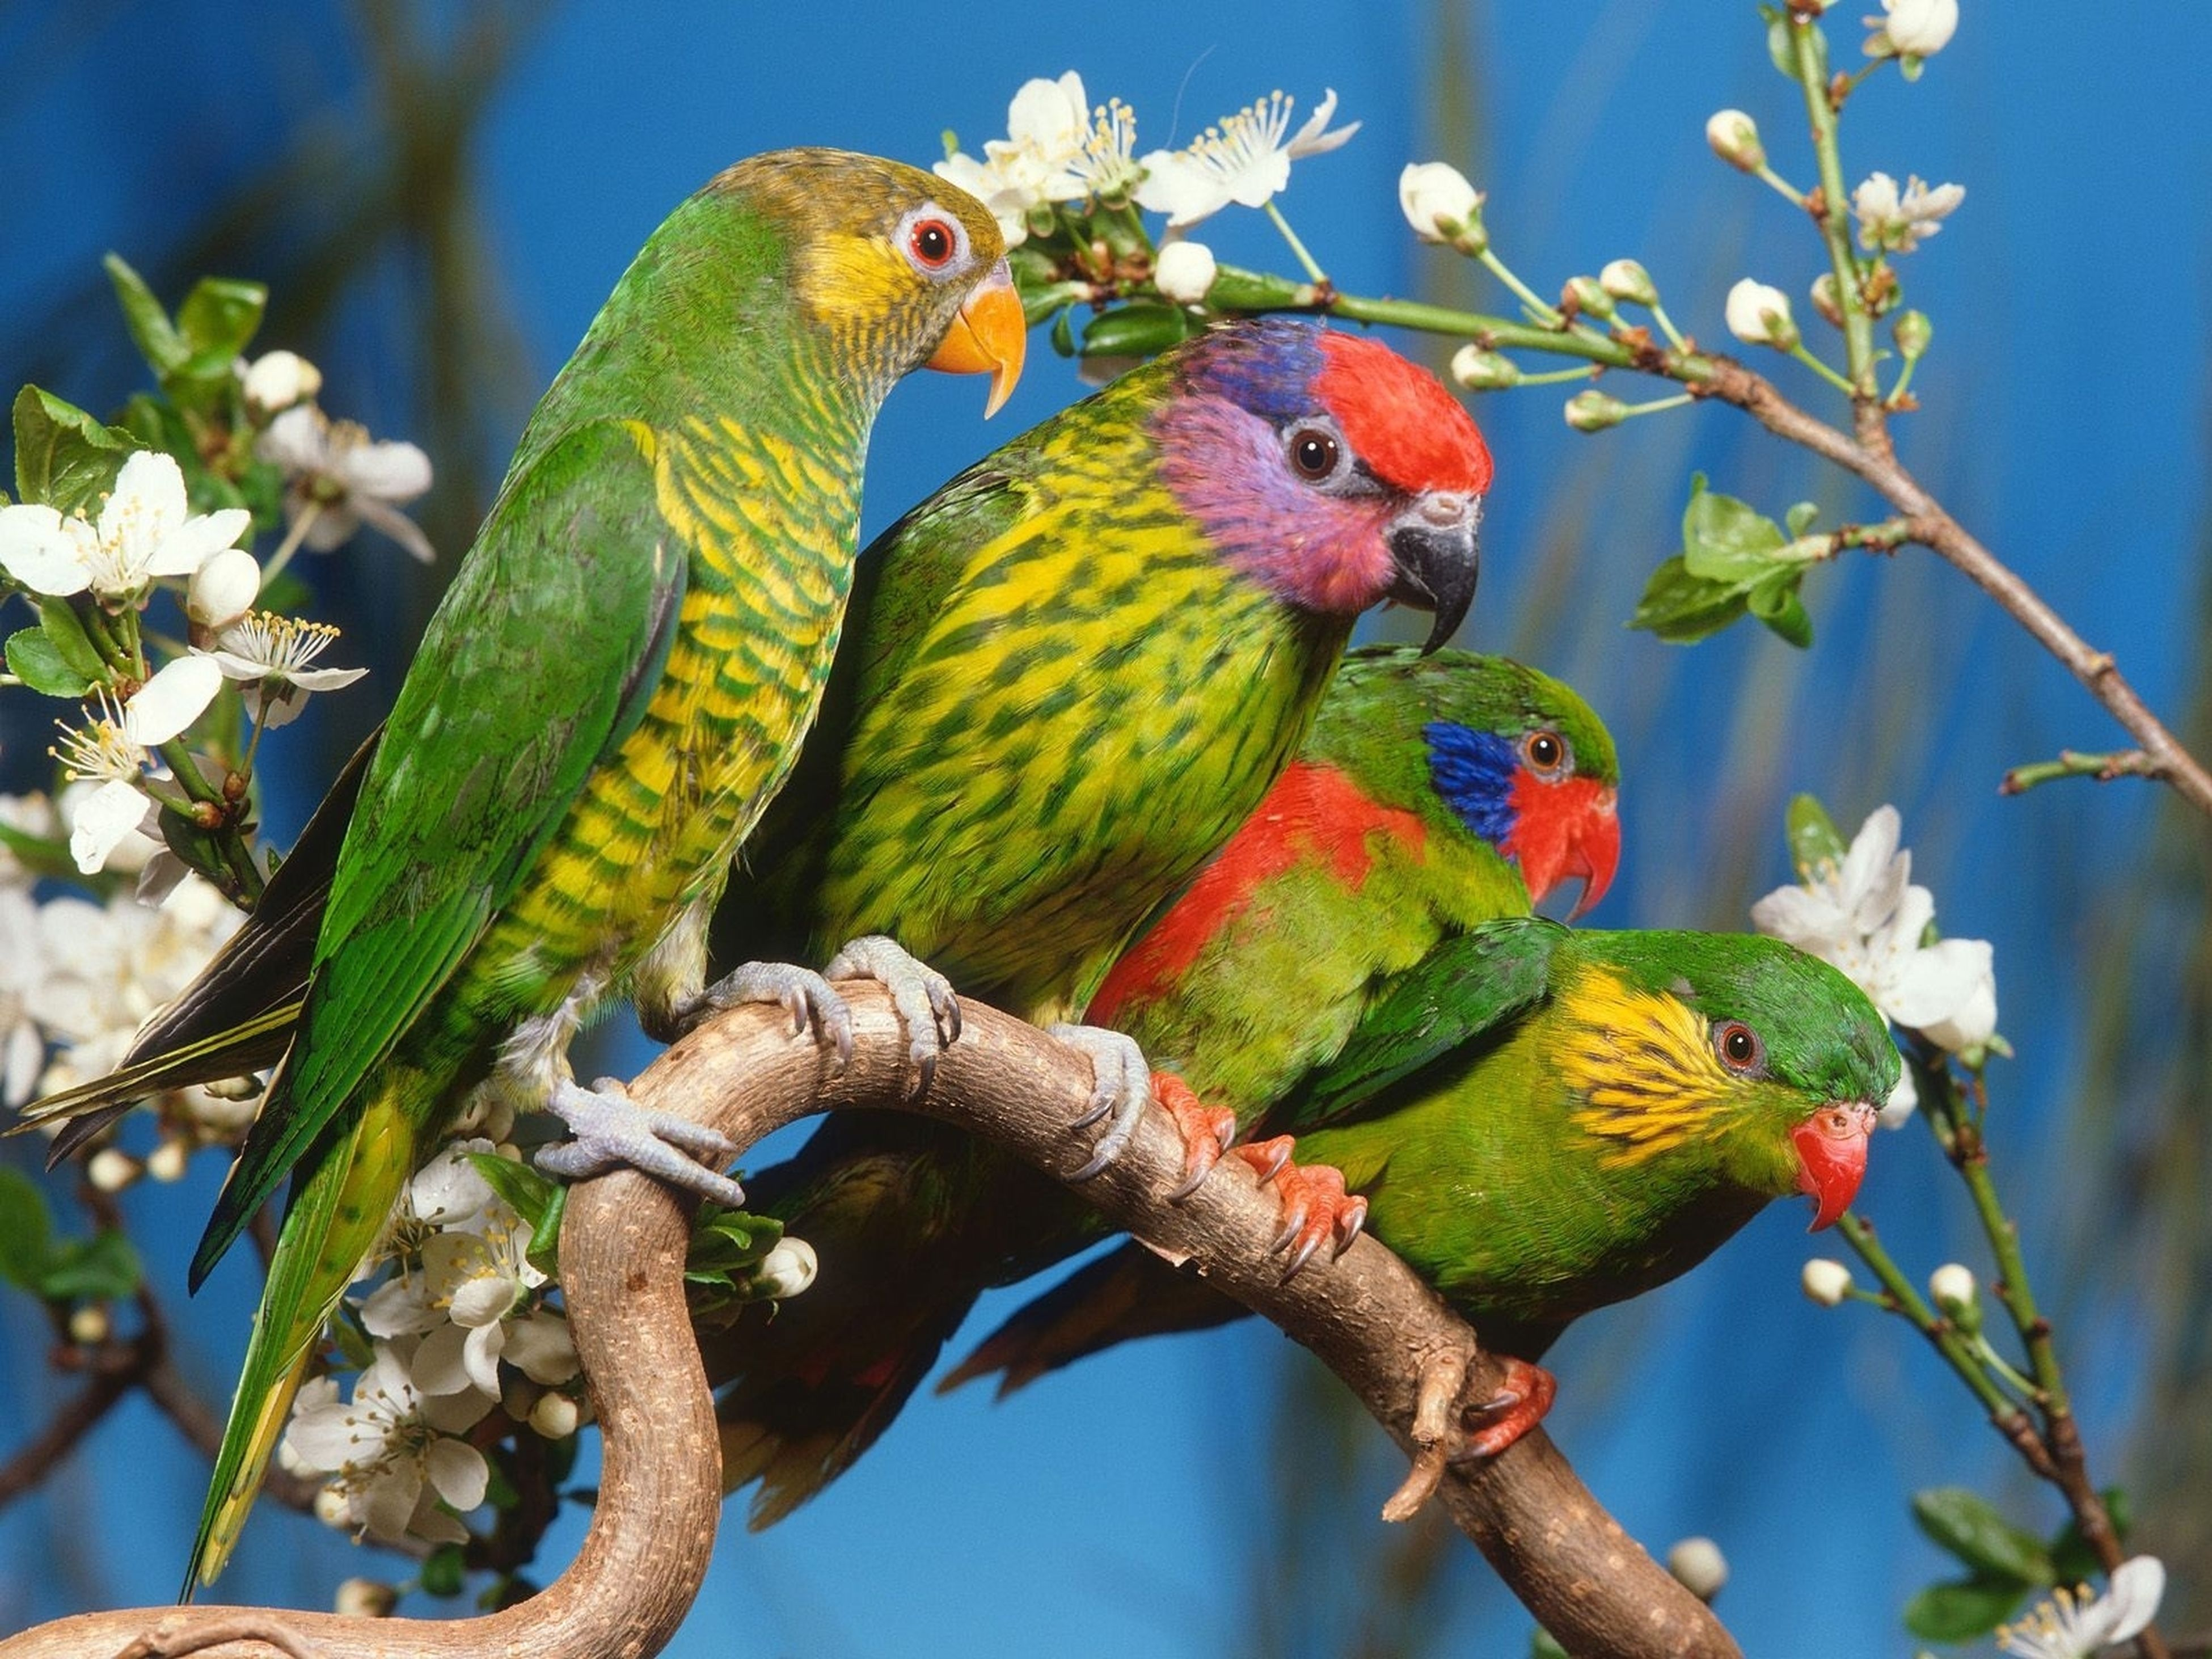 animal themes, bird, wildlife, branch, perching, low angle view, parrot, tree, close-up, nature, blue, multi colored, focus on foreground, day, outdoors, beauty in nature, no people, perched, avian, animal head, animal, growth, sky, green color, selective focus